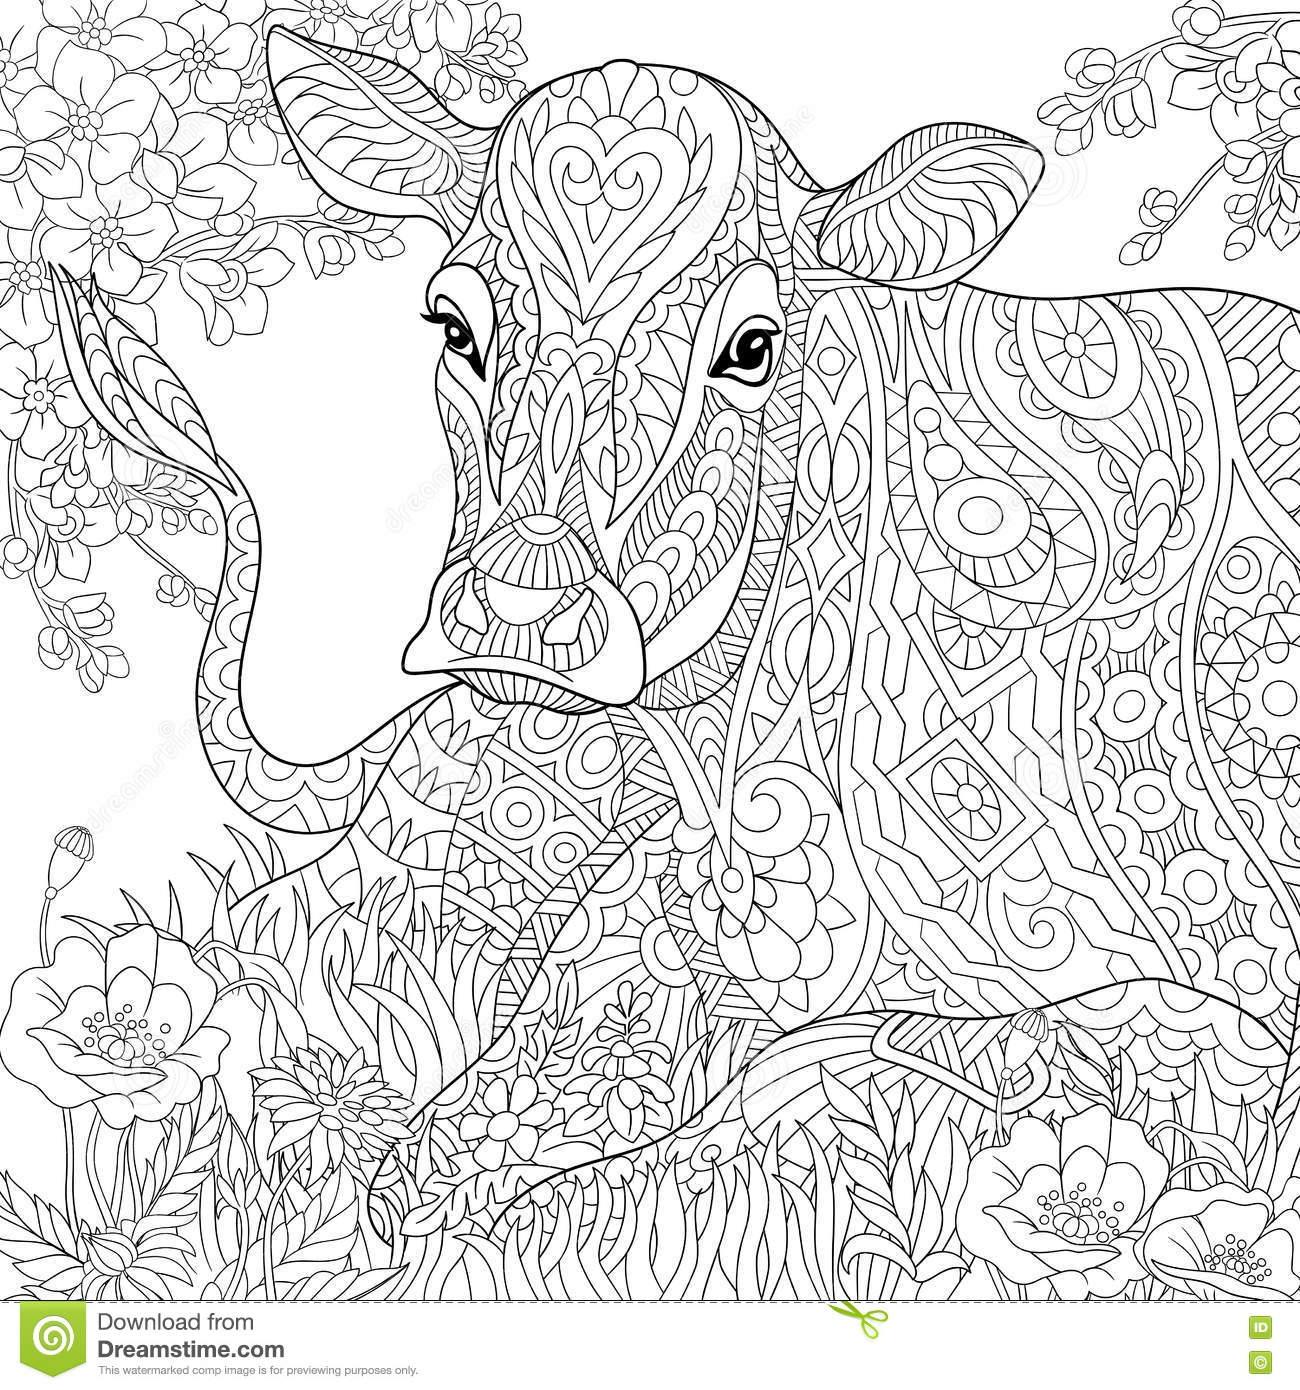 Zentangle Stylized Cartoon Pasturing Cow Flower Blossom Grass Field Hand Drawn Sketch For Adult Antistress Coloring Book Page T Shirt Emblem